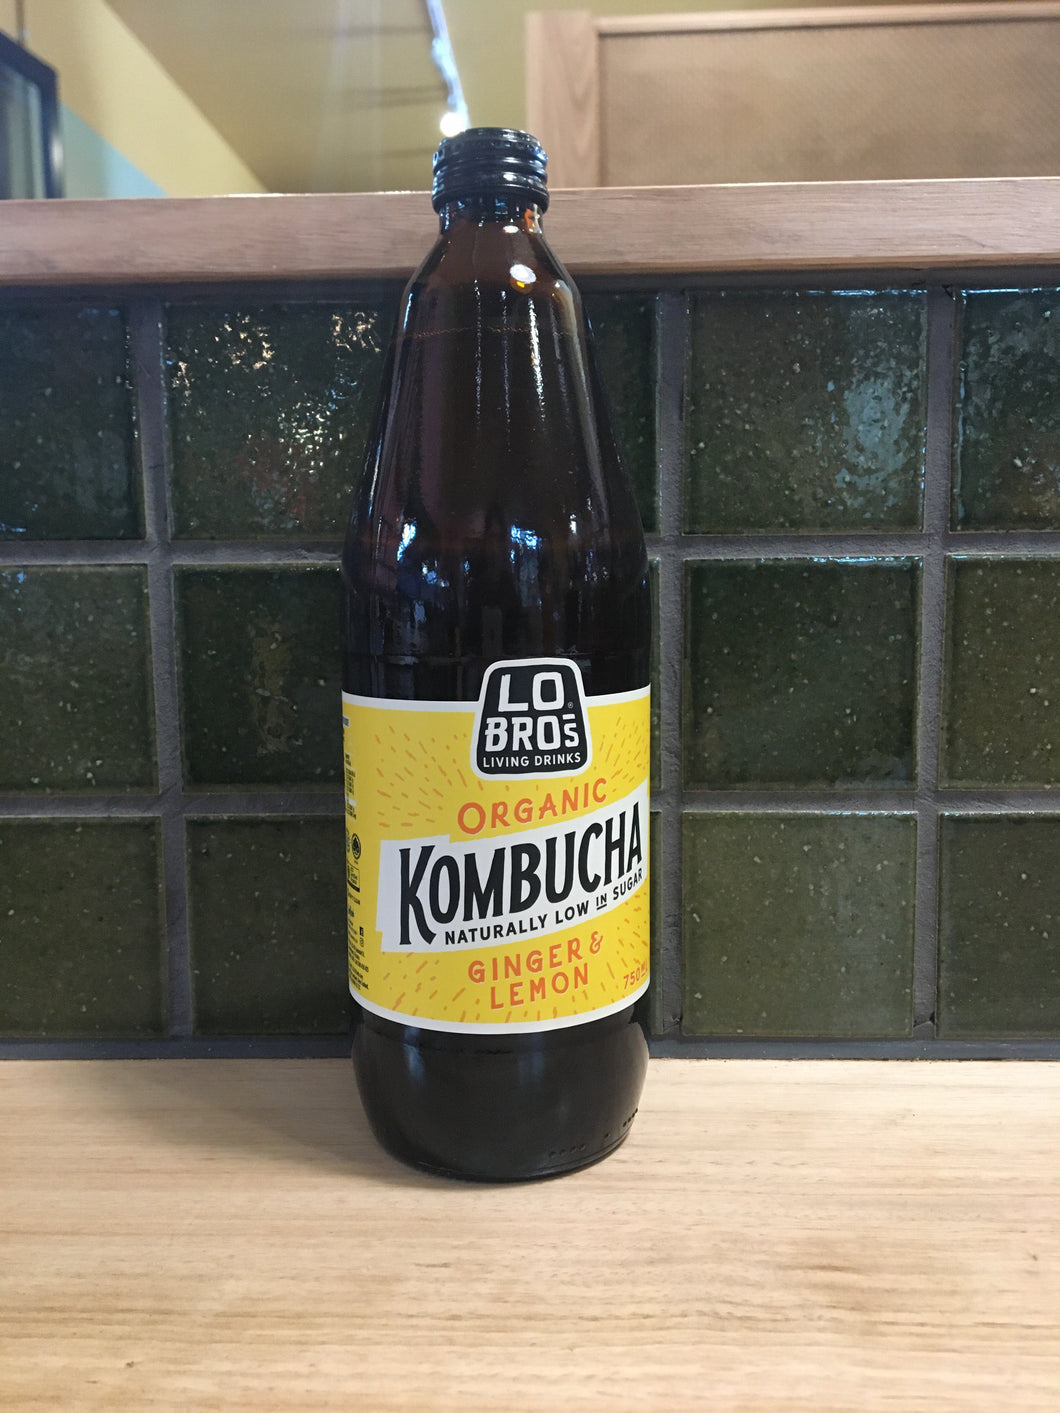 Lo Bros Kombucha Ginger Lemon 750ml